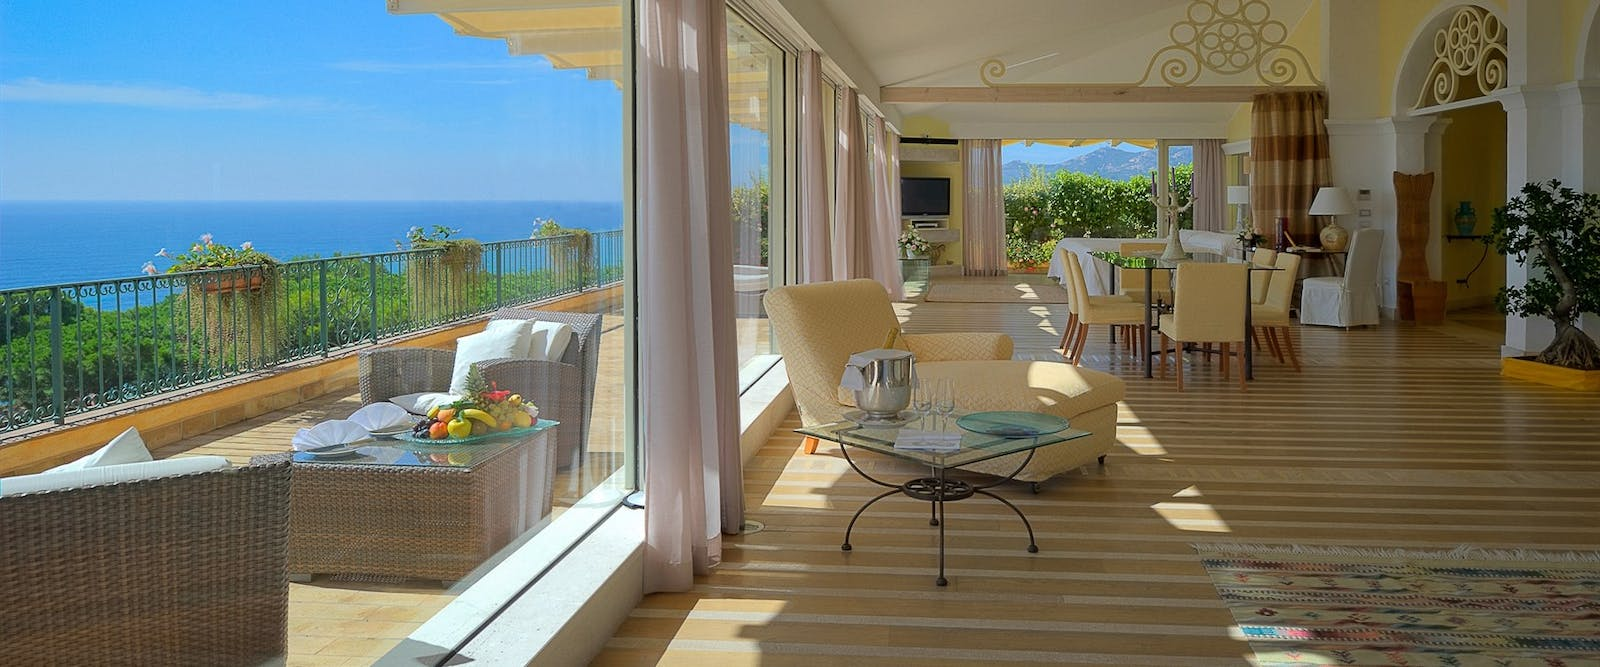 Royal Suite at Forte Village Hotel Castello, South Sardinia, Italy